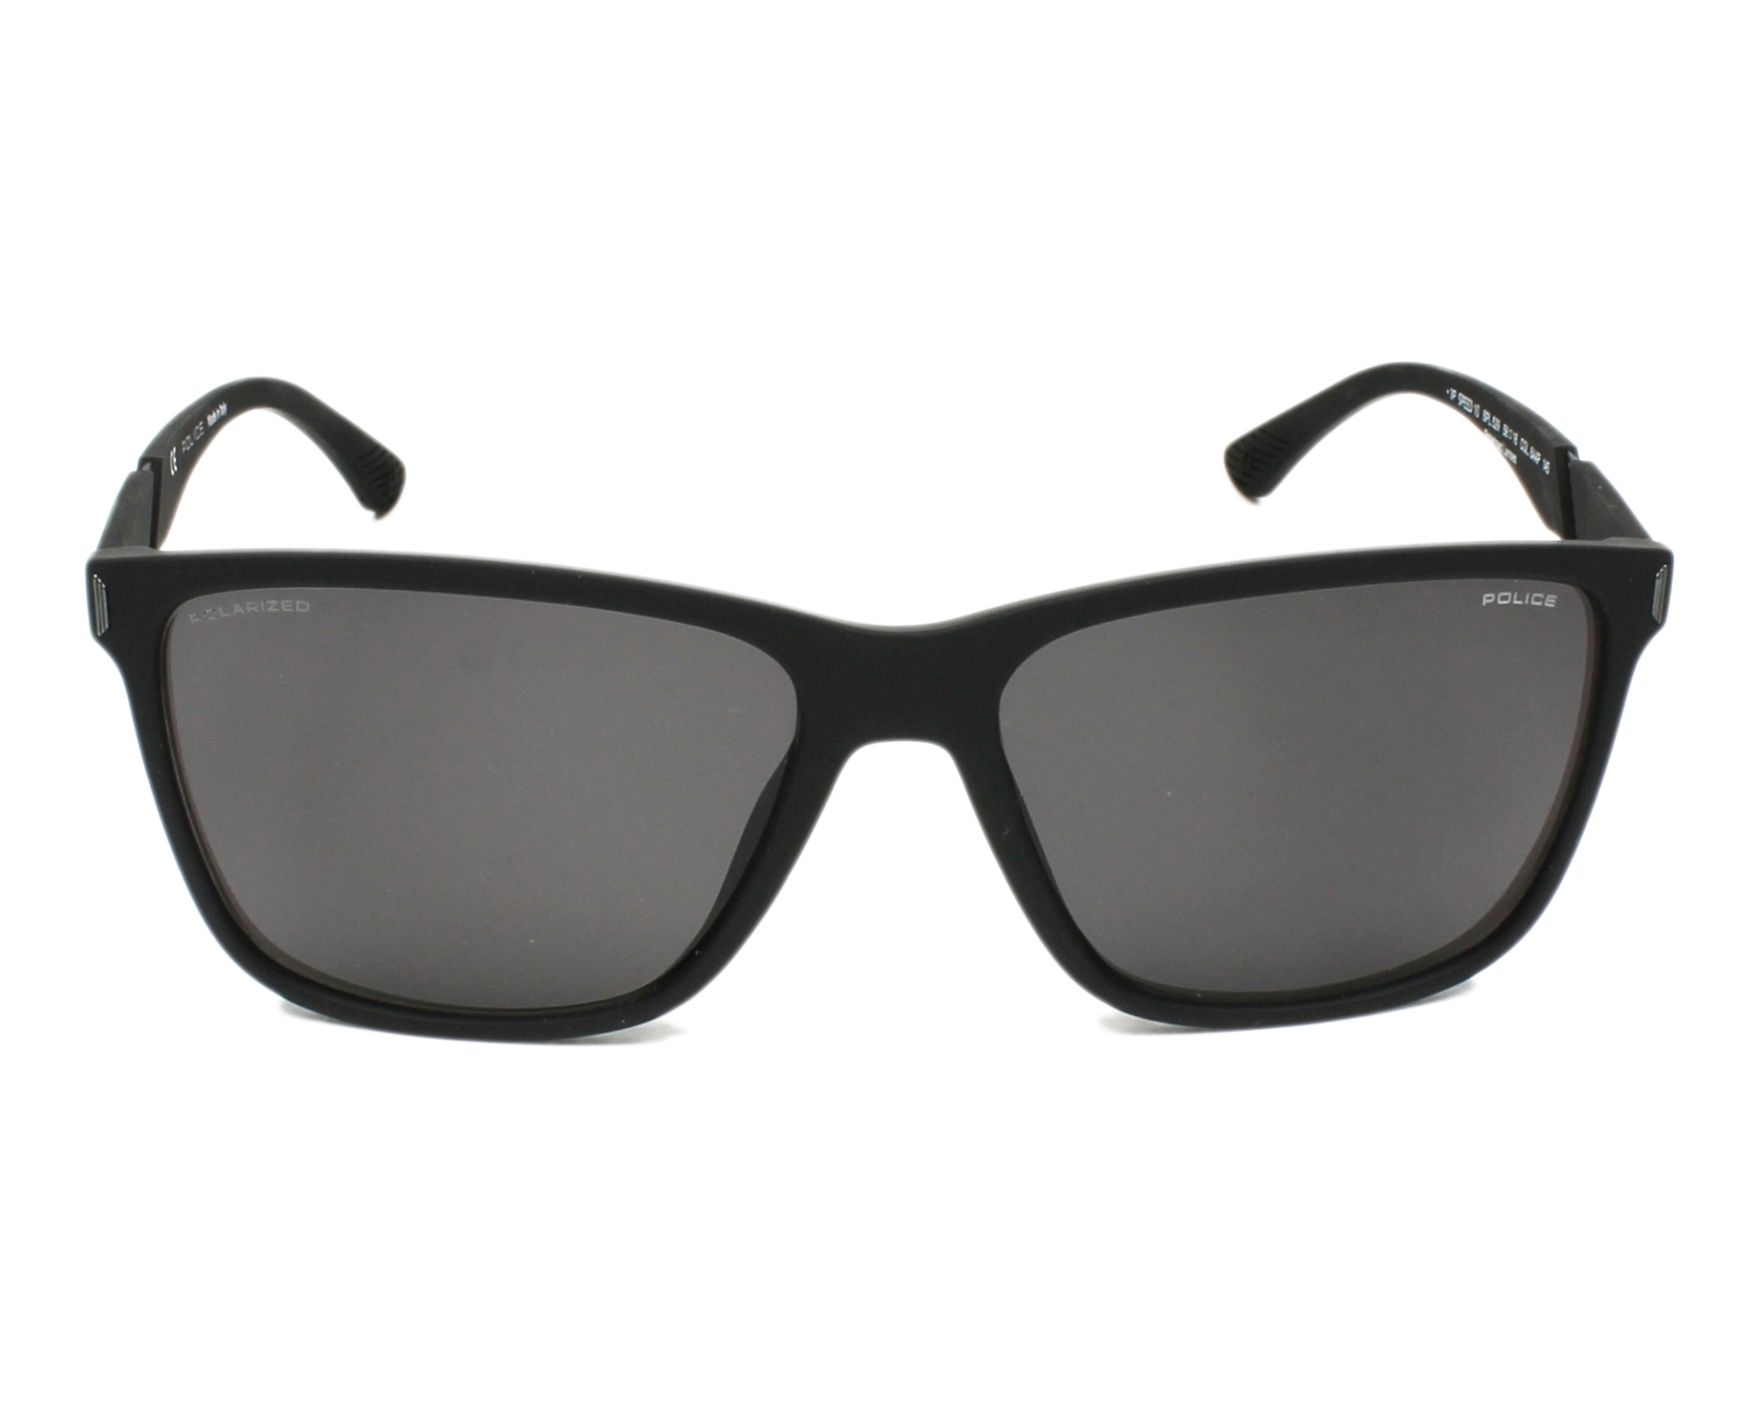 48f4a5d67c Sunglasses Police SPL-529 6AAP 58-16 Black front view